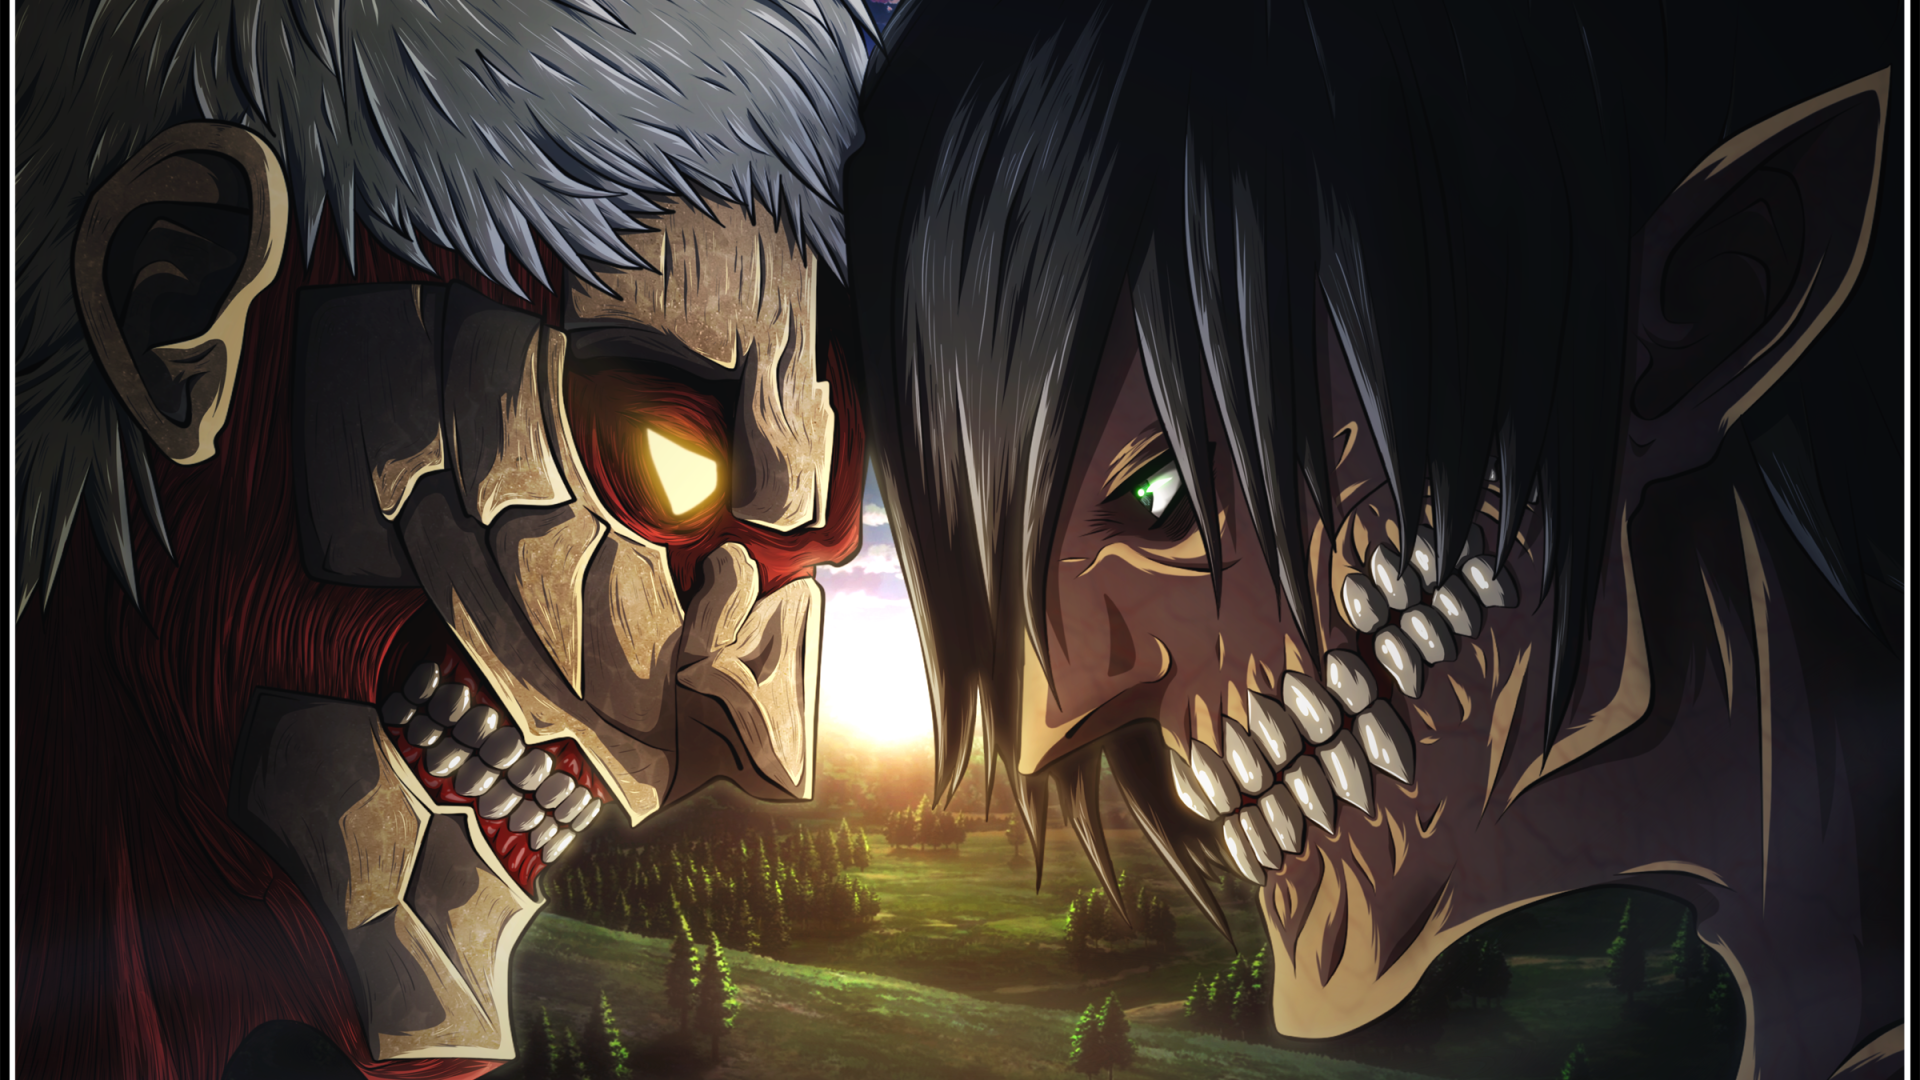 Hd Anime Attack On Titan 1920x1080 Download Hd Wallpaper Wallpapertip